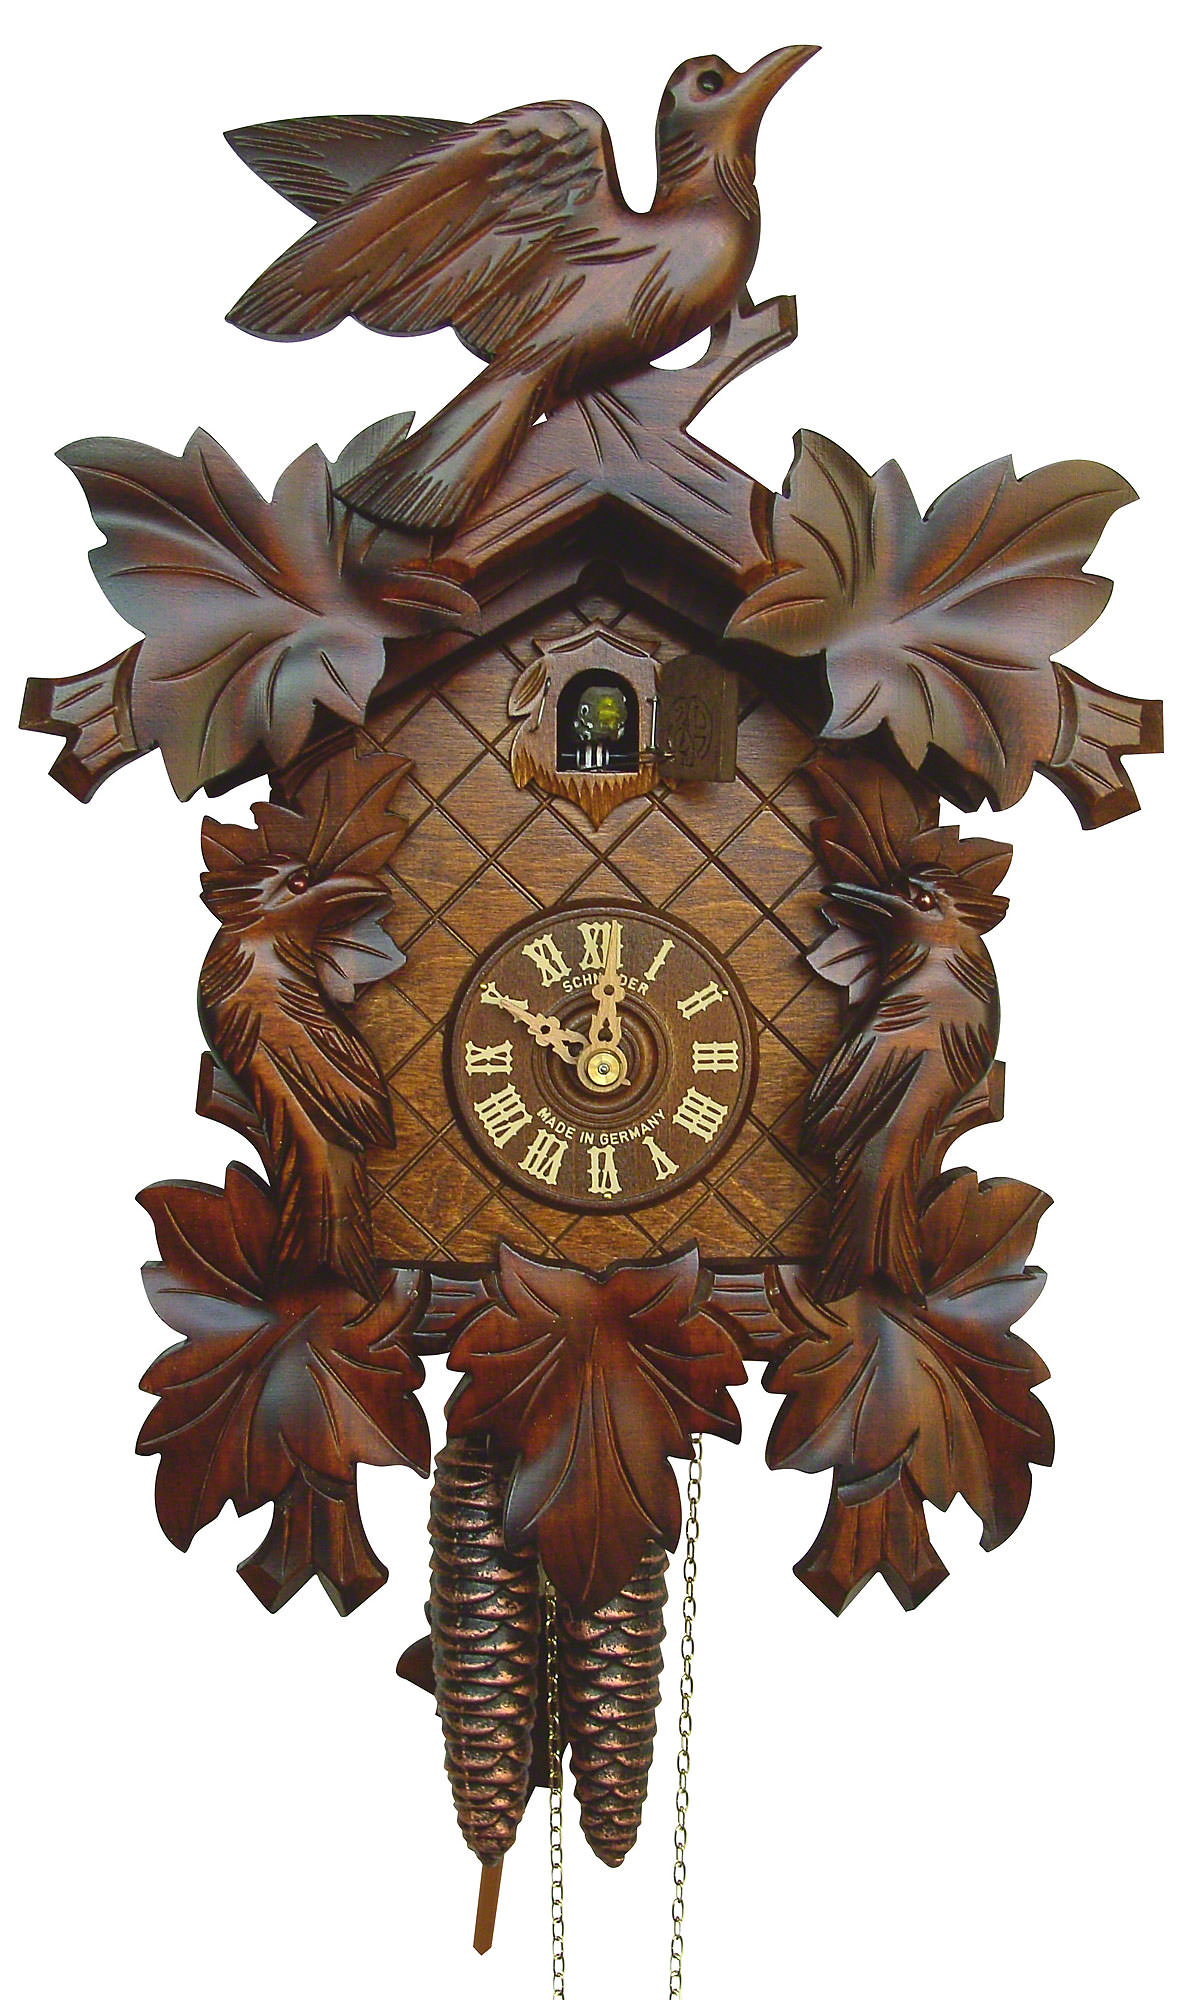 cuckoo clock 8 day movement carved style 34cm by anton schneider